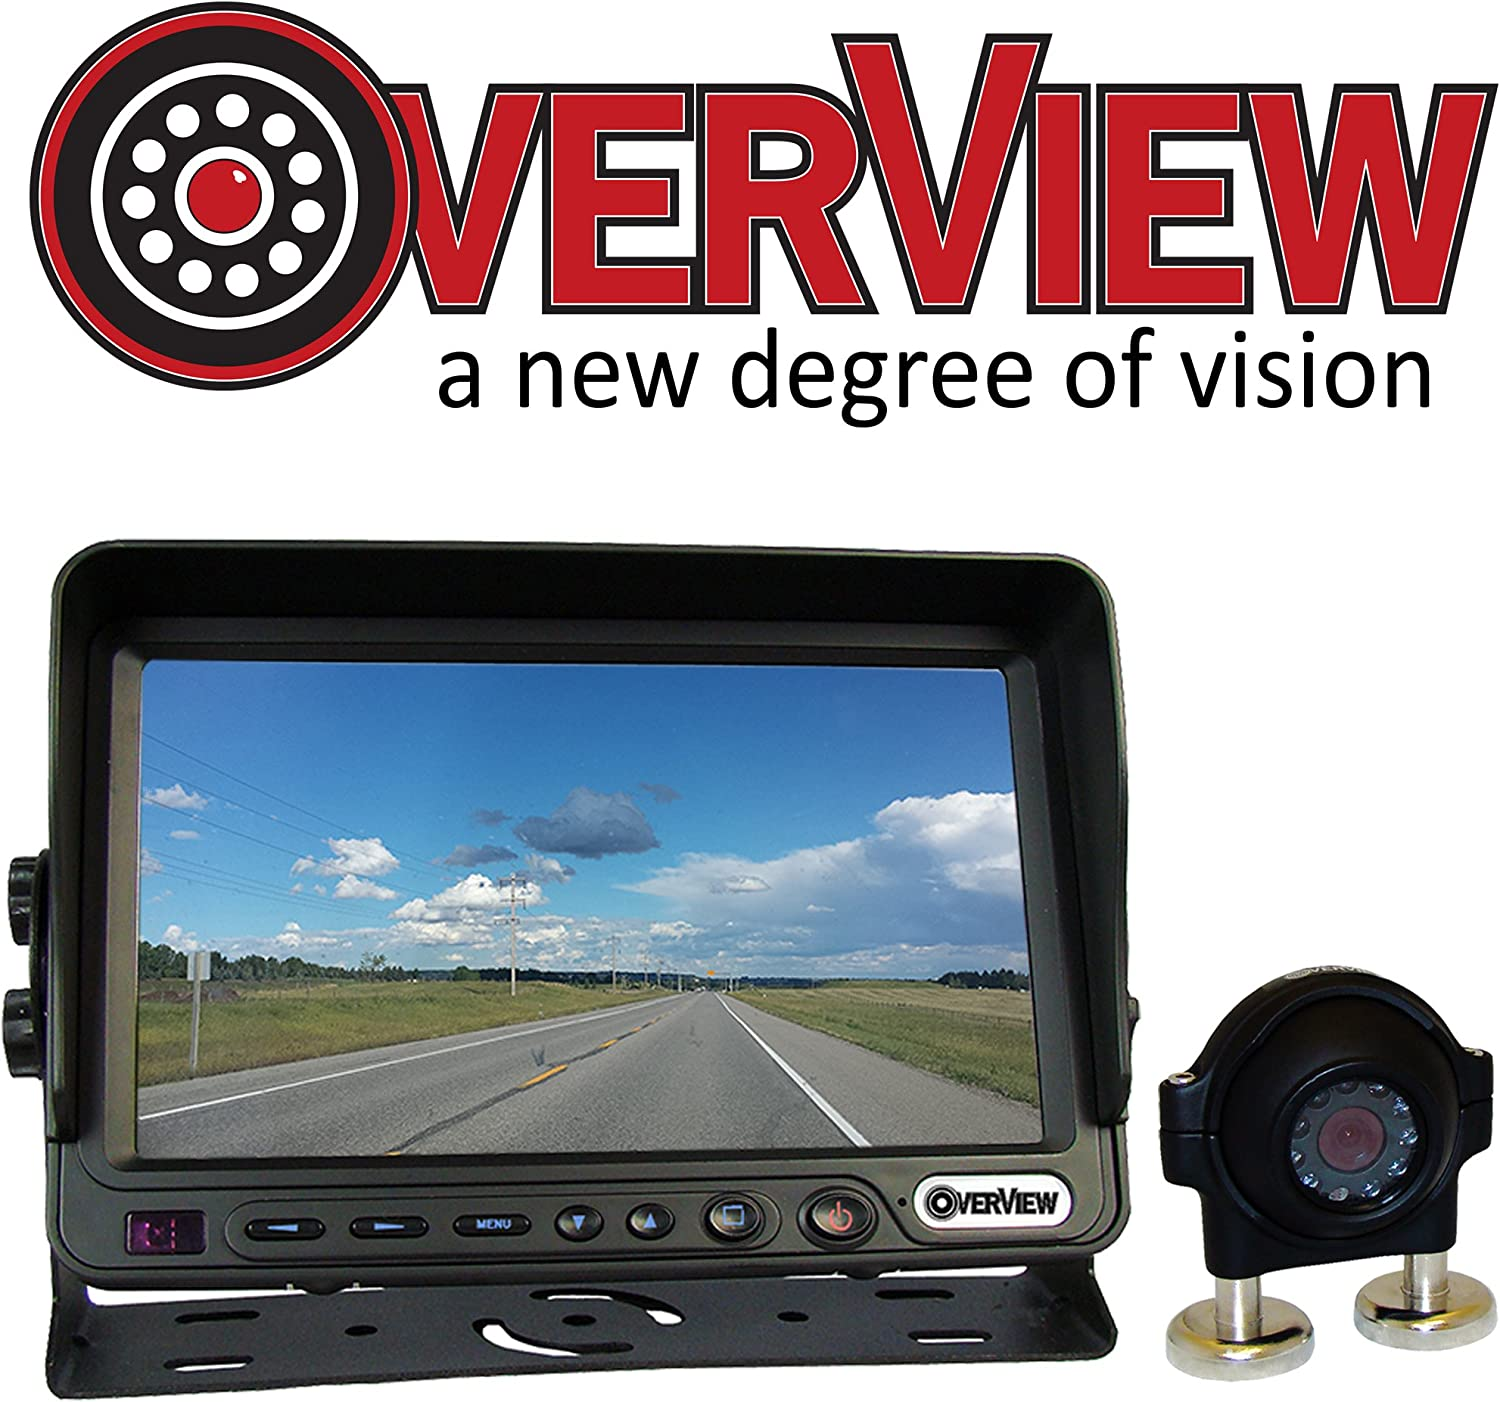 OverView 7in Single Camera Kit Rearview System Perfect for Tractors and Construction Equipment Trailers Campers Cattle